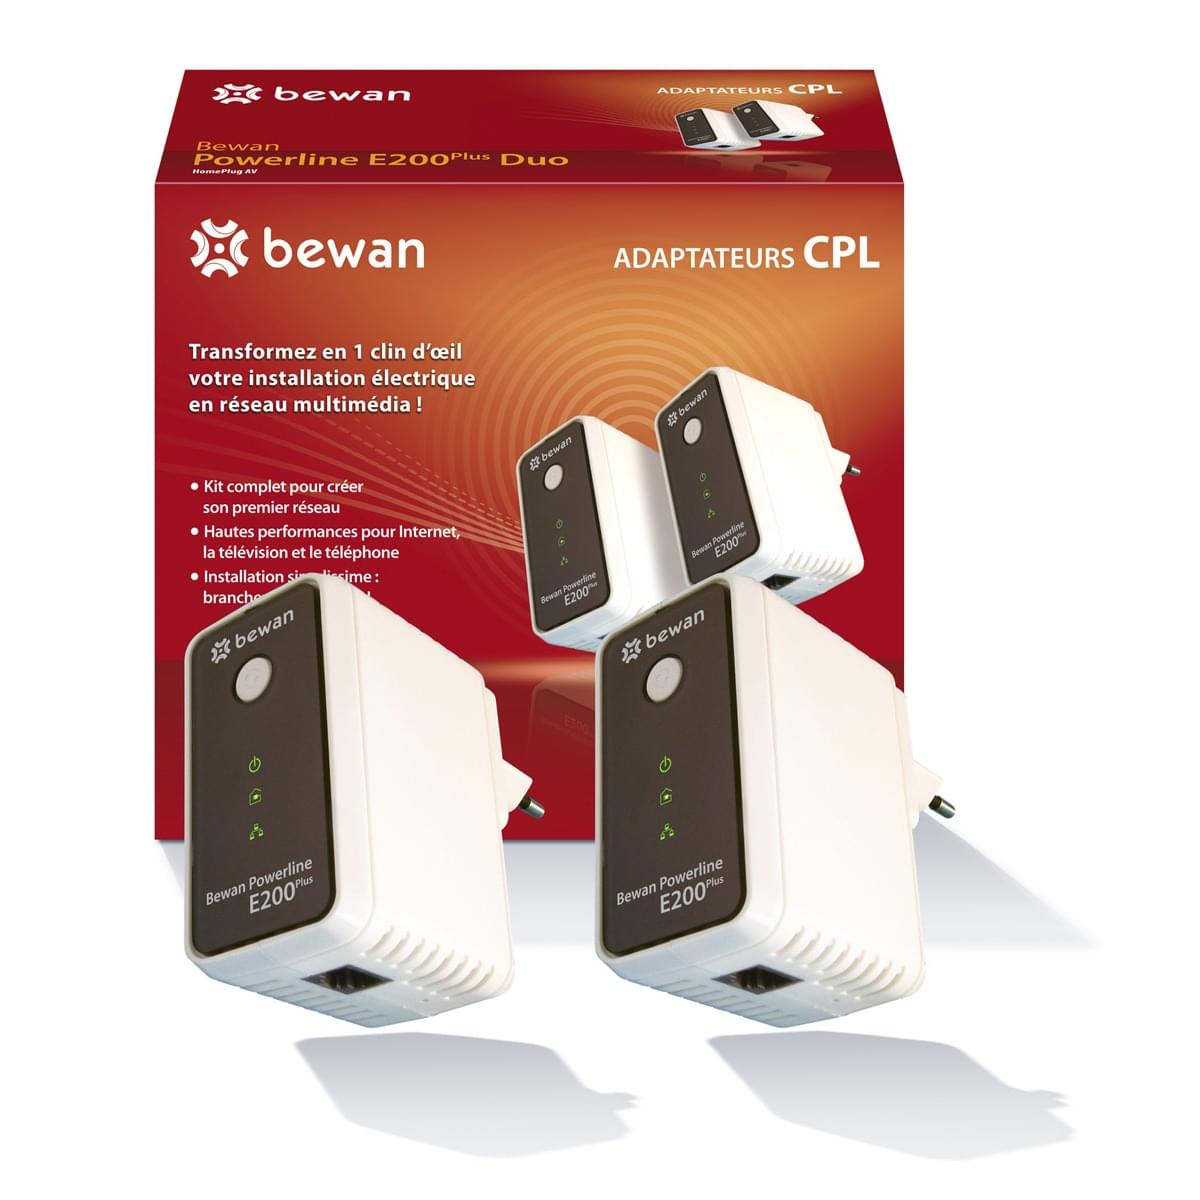 Bewan PowerLine E200Plus Duo (200Mb) Pack de 2 - Adaptateur CPL - 0